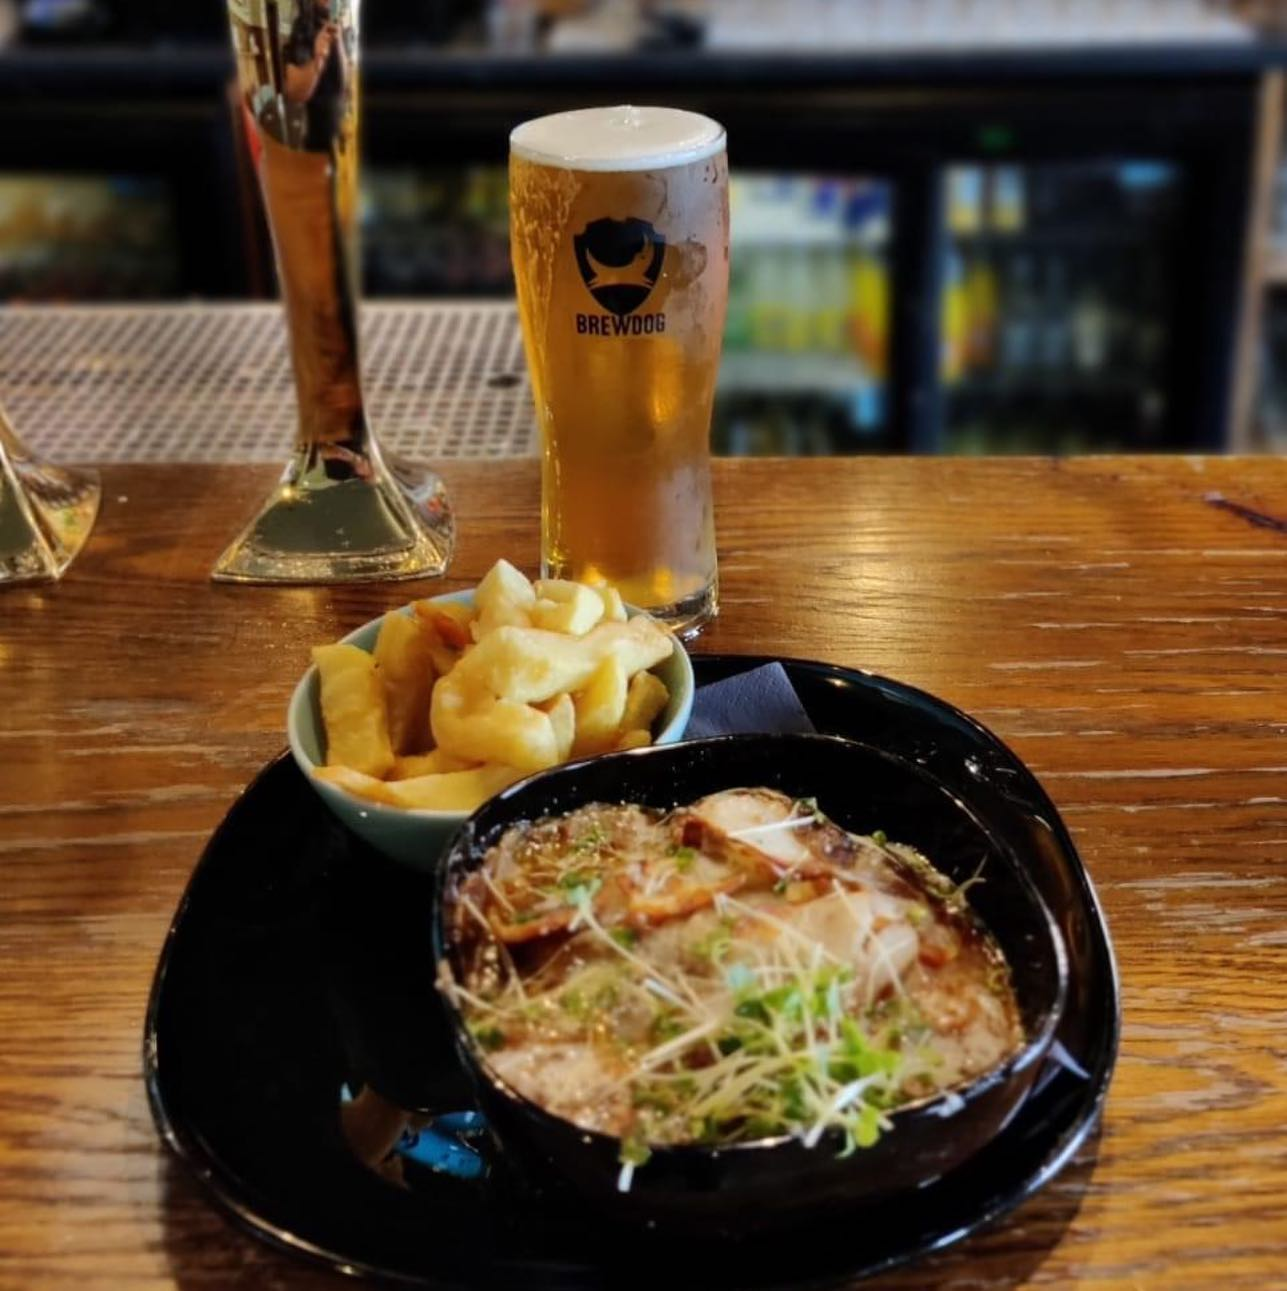 Today's special 🥰Steak and potato pie Food served until late 🌮🌮 Ps Punk ipa is optional but definitely recommended #keeponrockin #TIPSYTUESDAY #TastyTuesday